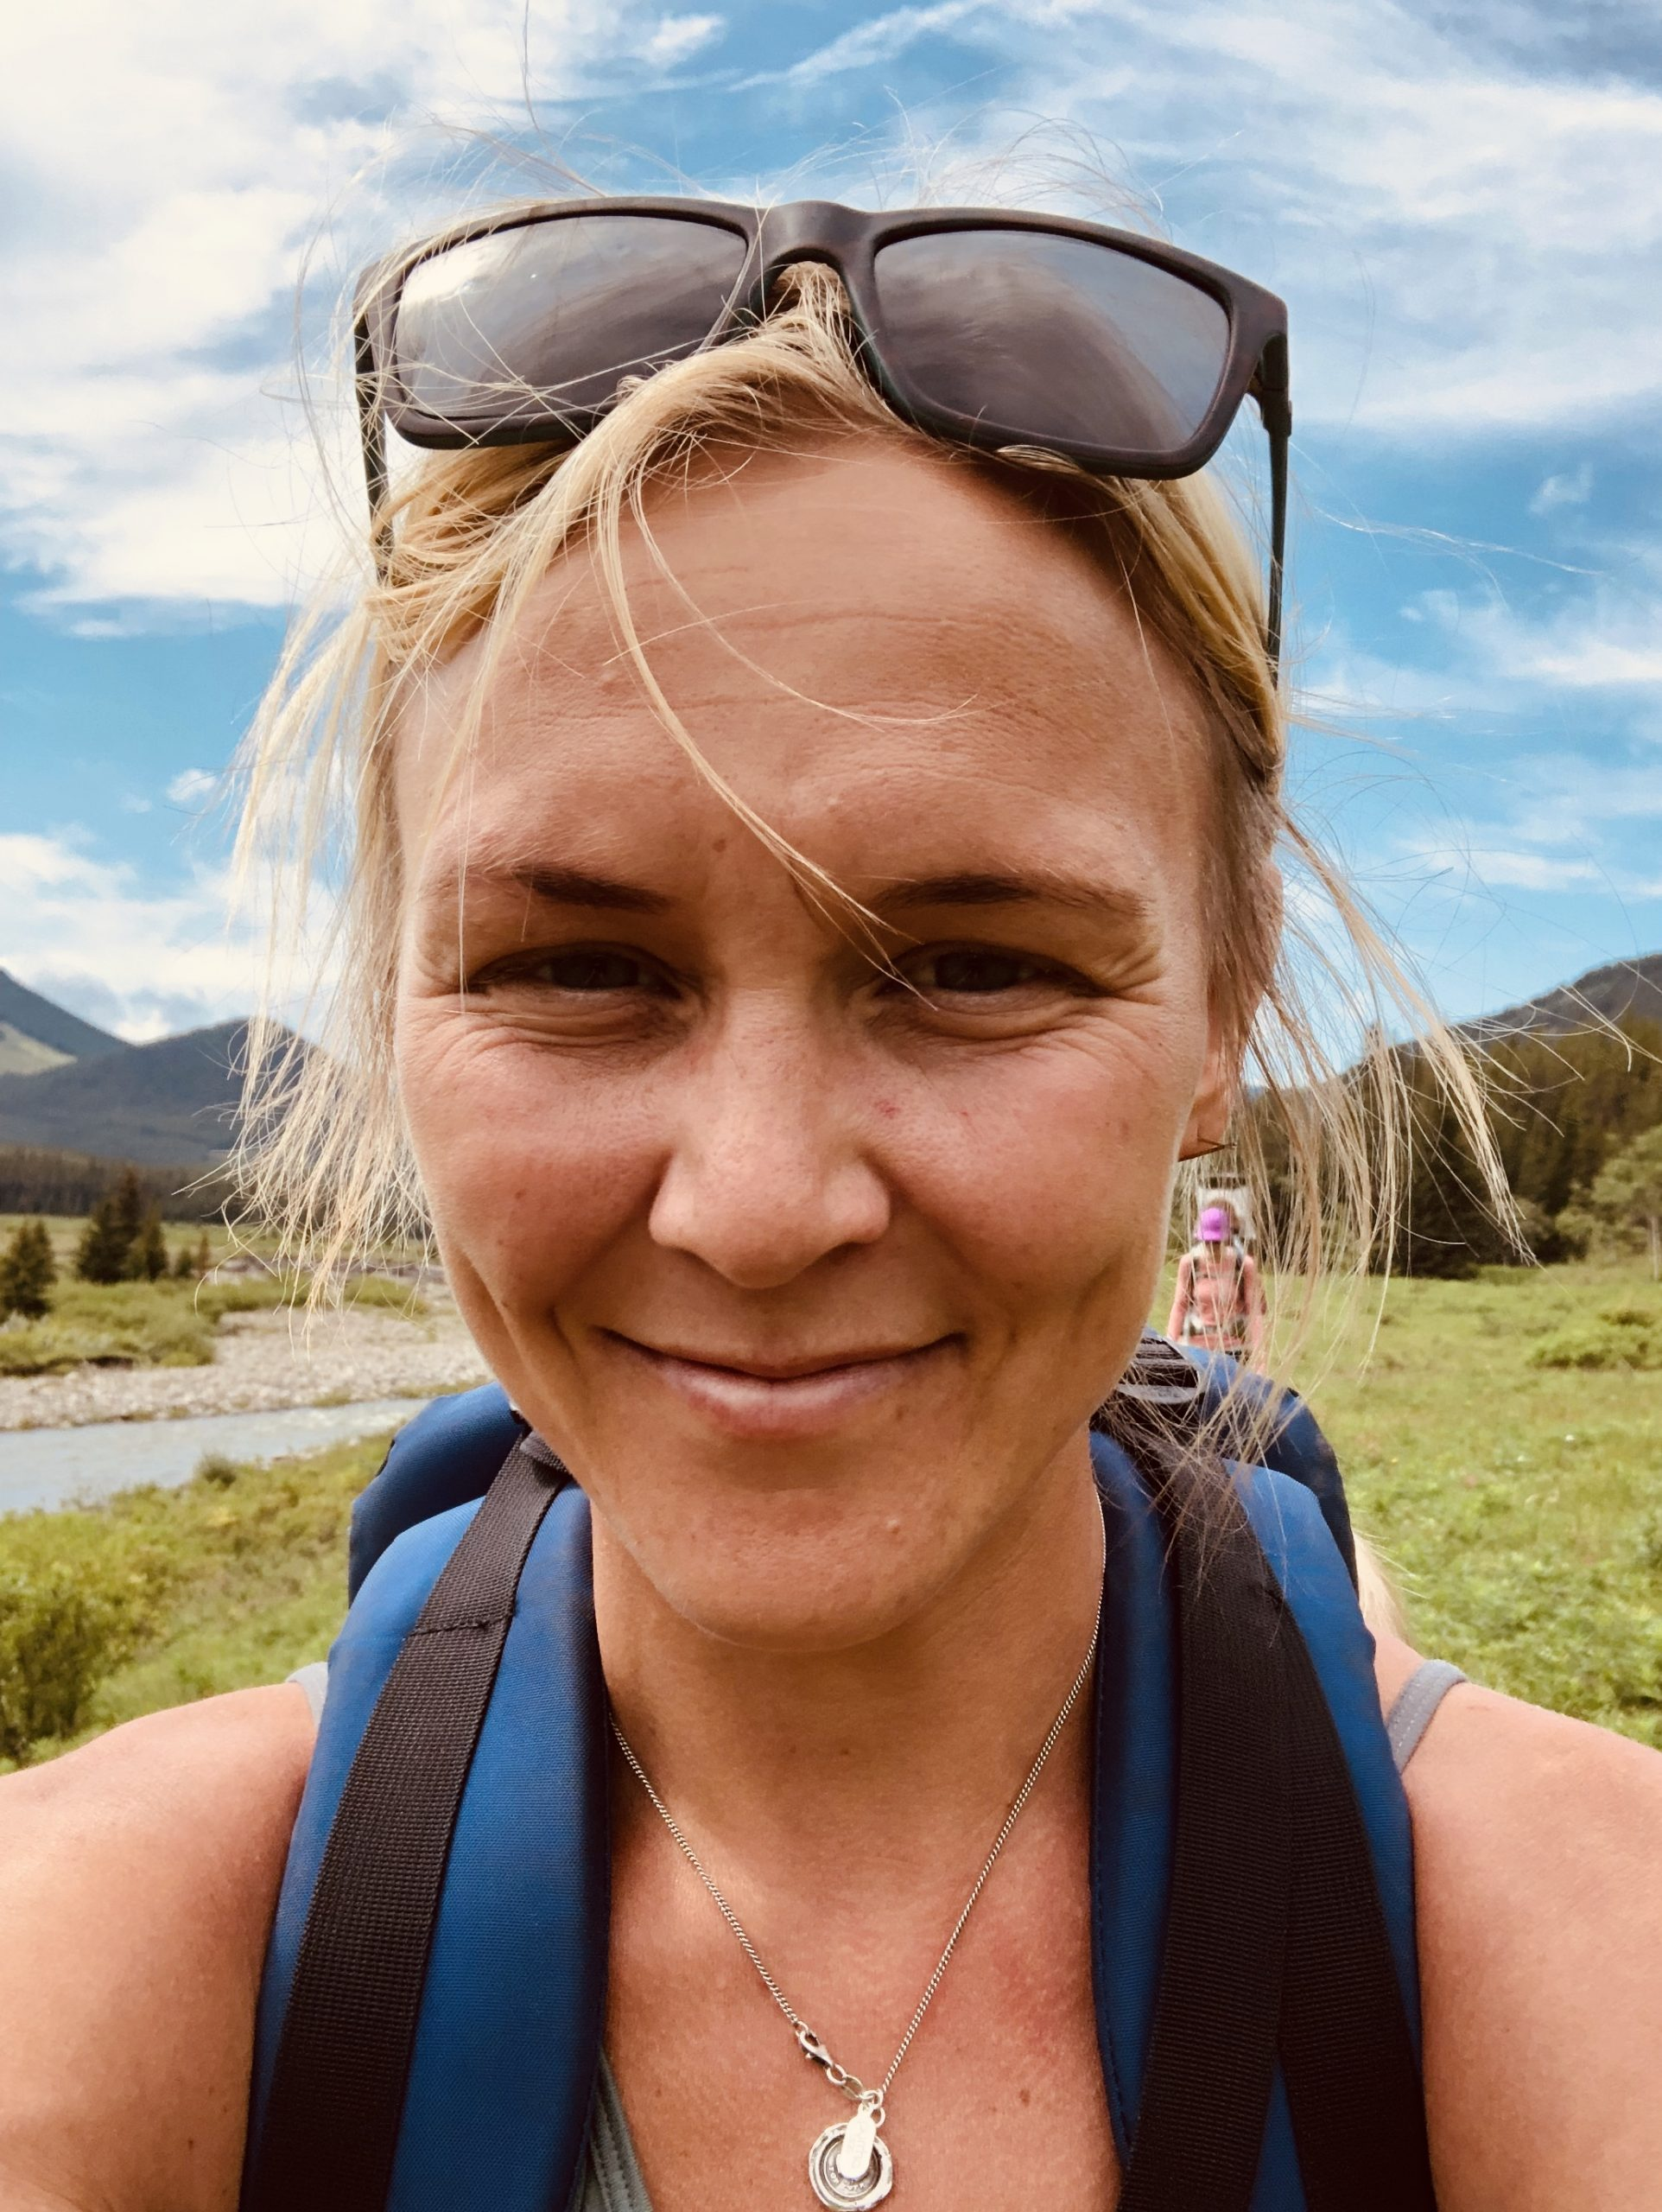 021 – Jessica Mills and the Power of a Campfire